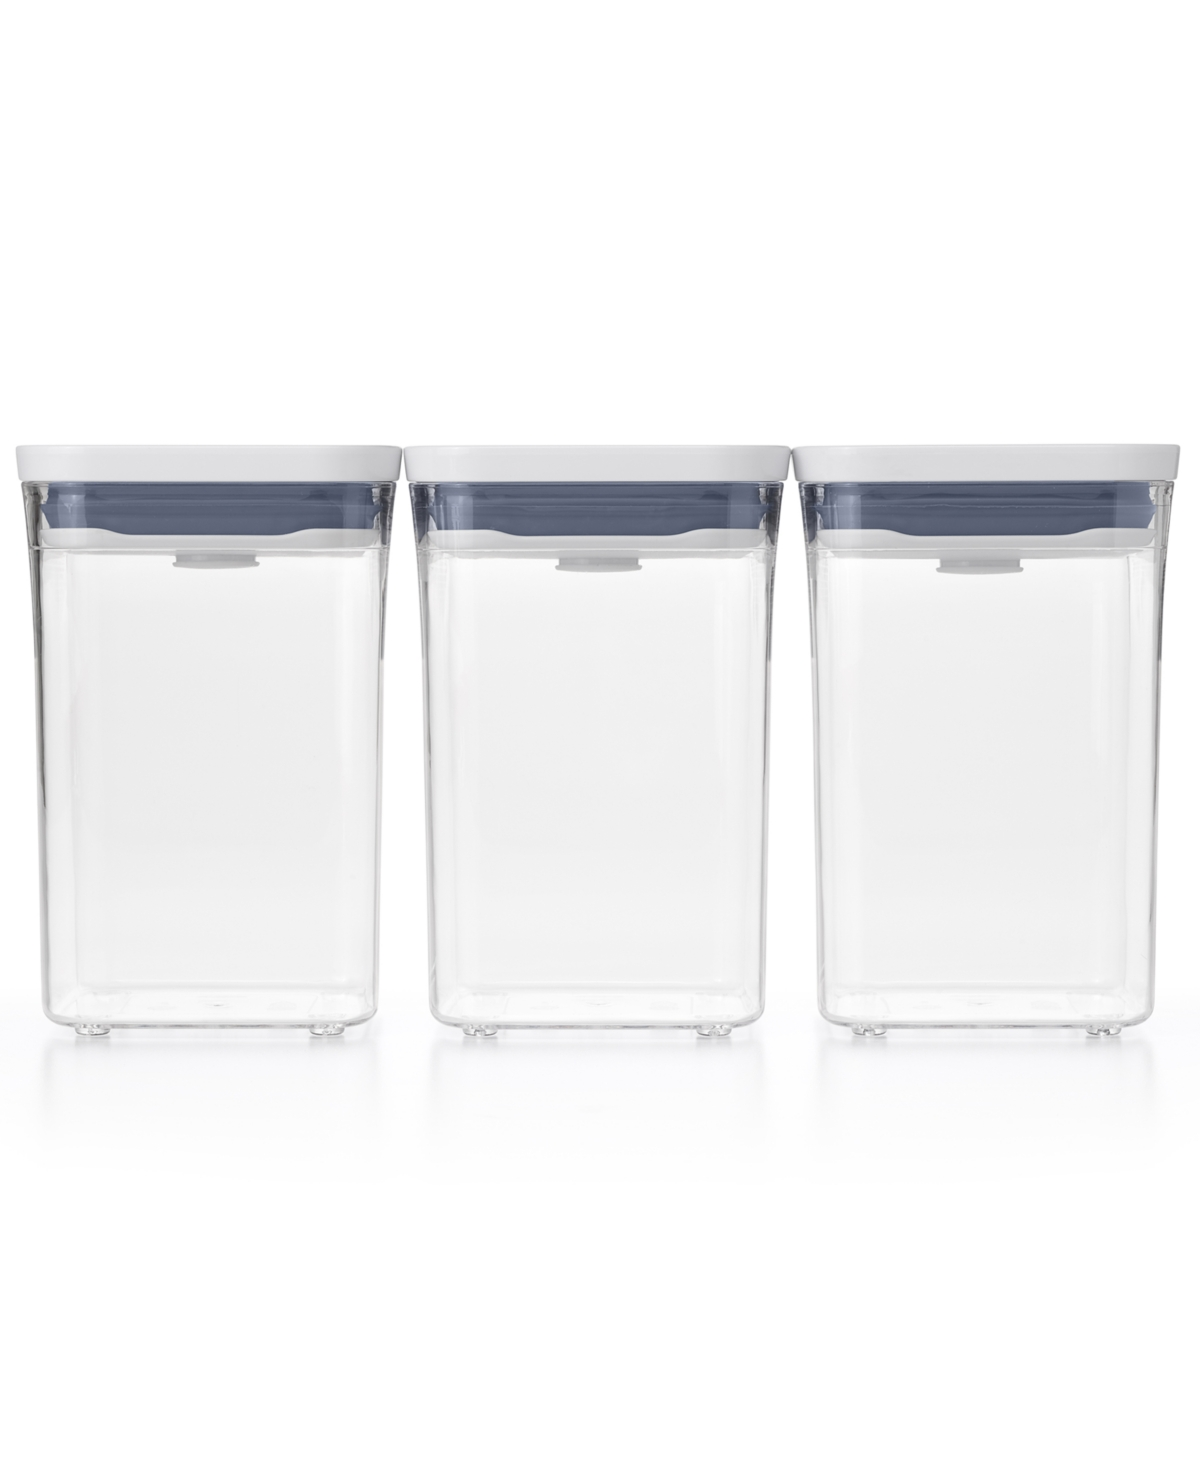 Oxo Pop 3-Pc. Food Storage Container Value Set